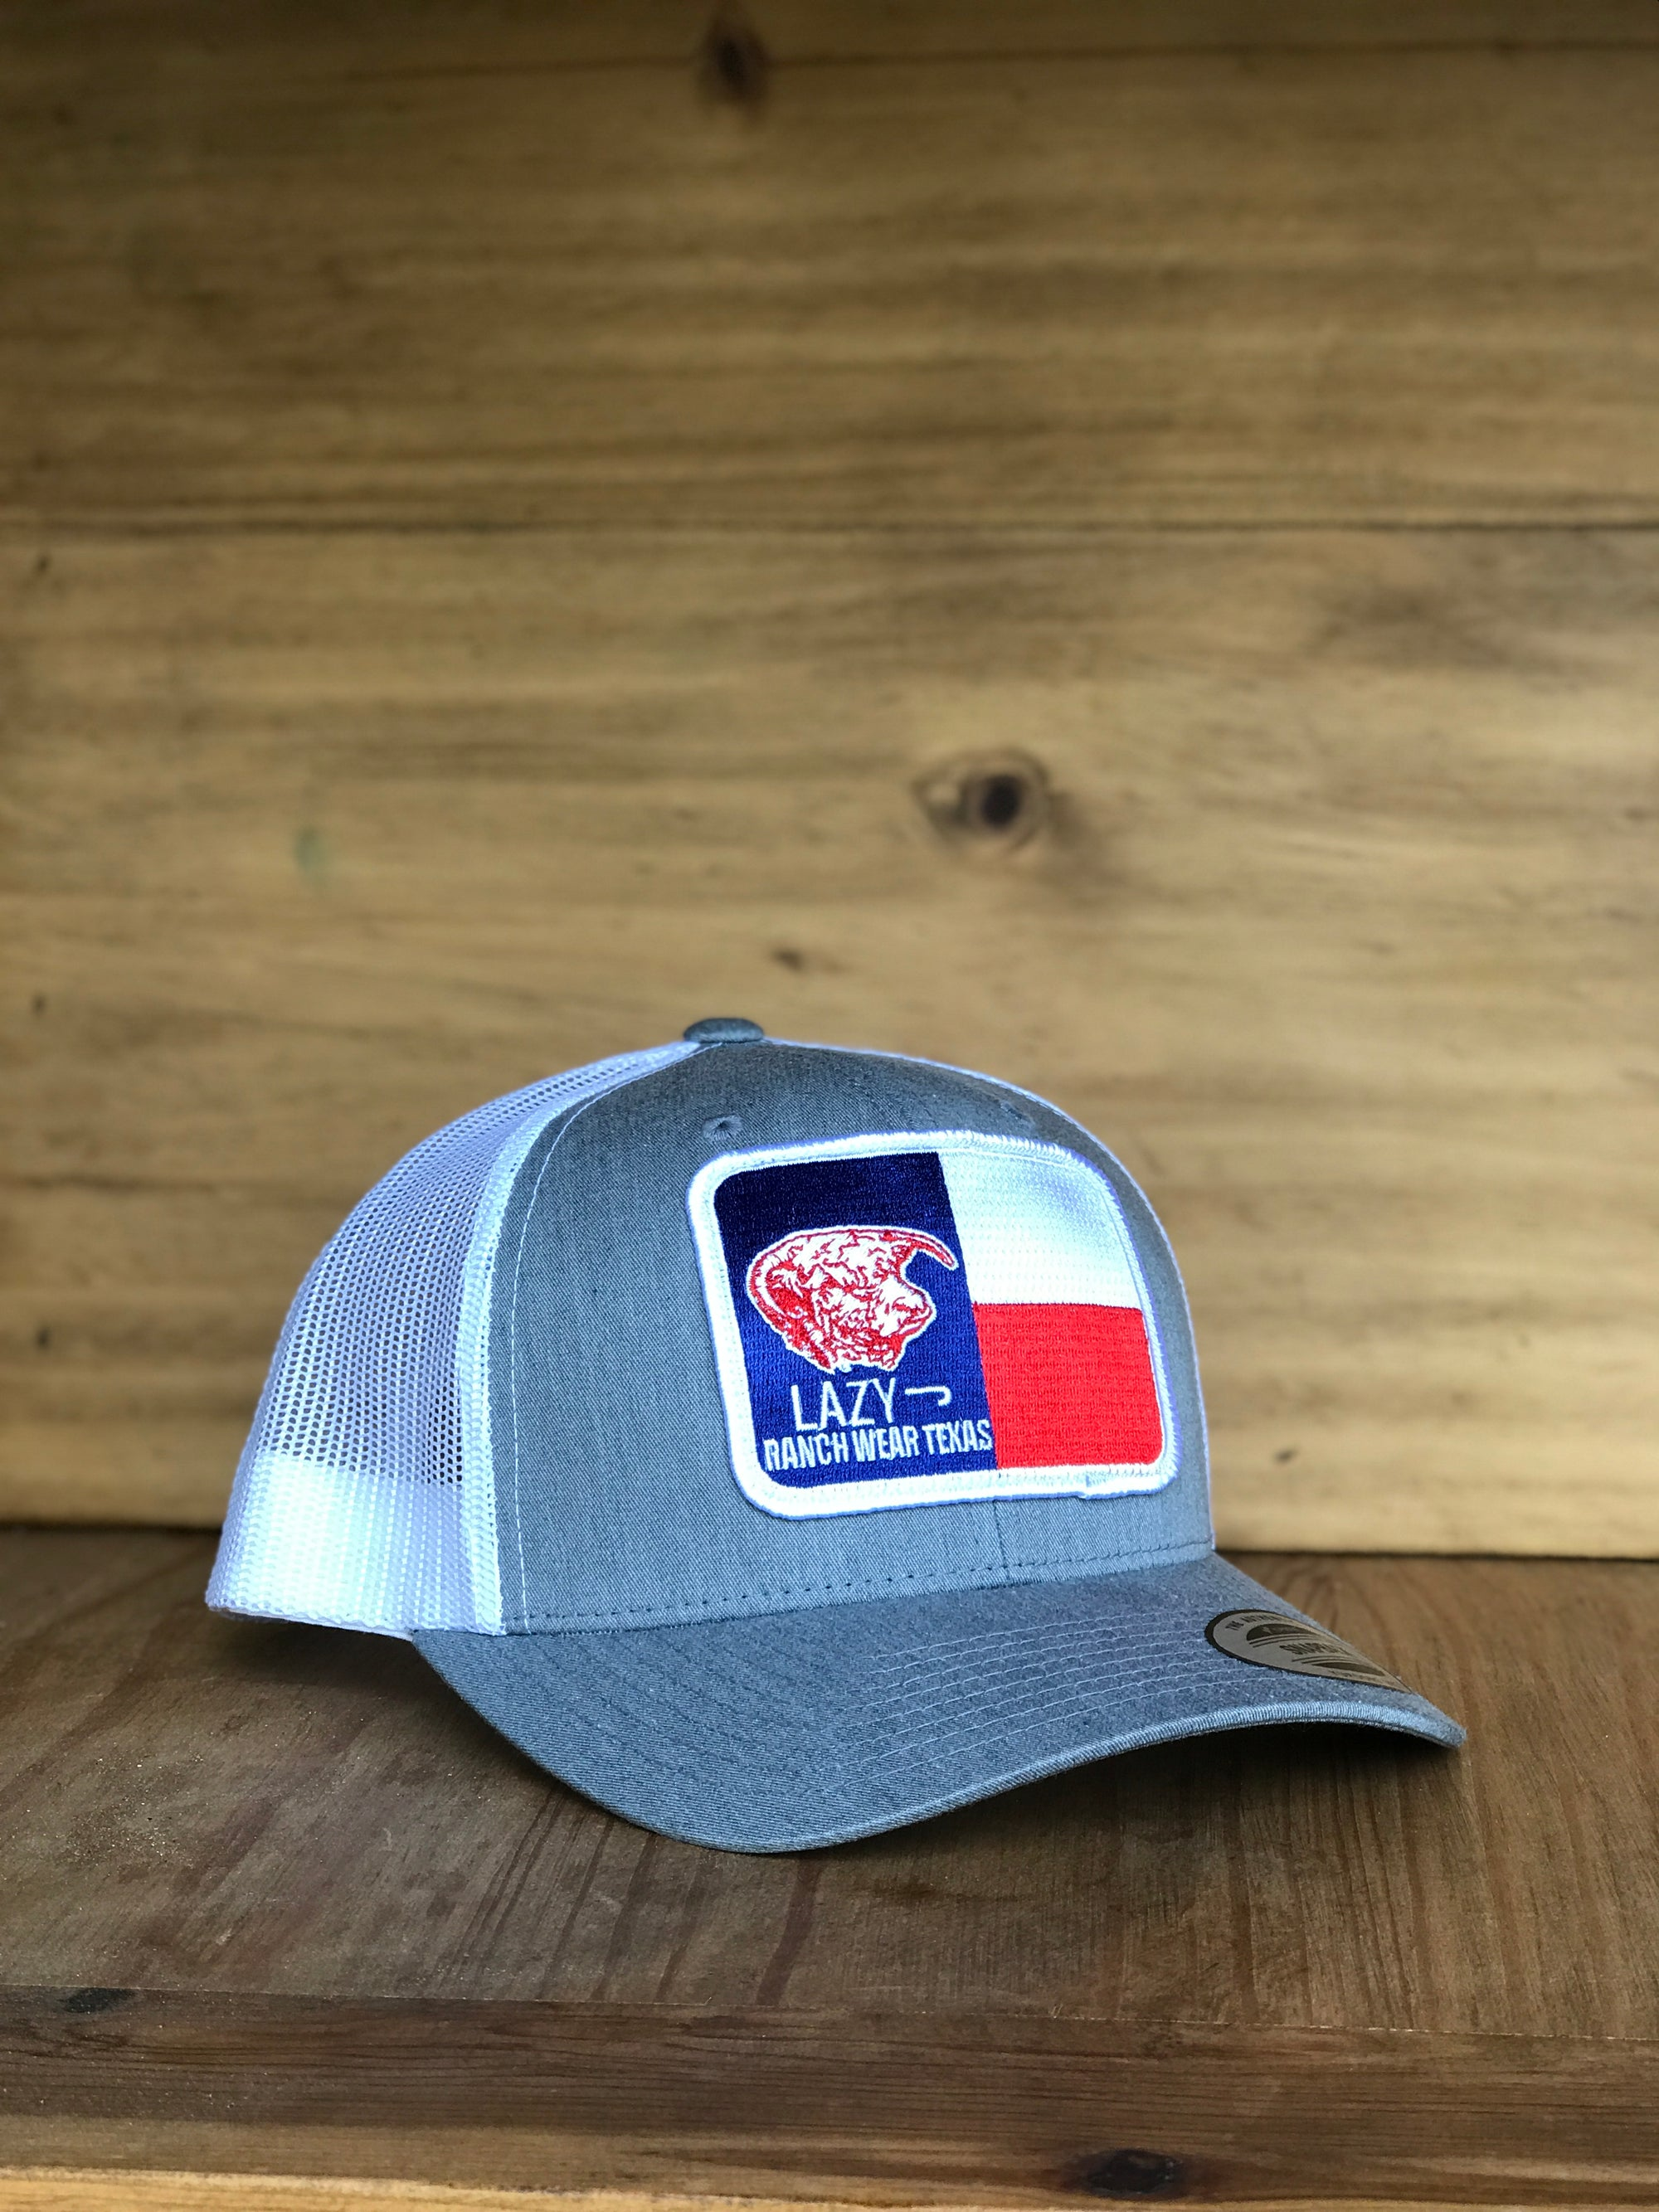 "Lazy J Ranch Wear Heather Grey & White 3.5"" Texas Flag Elevation"